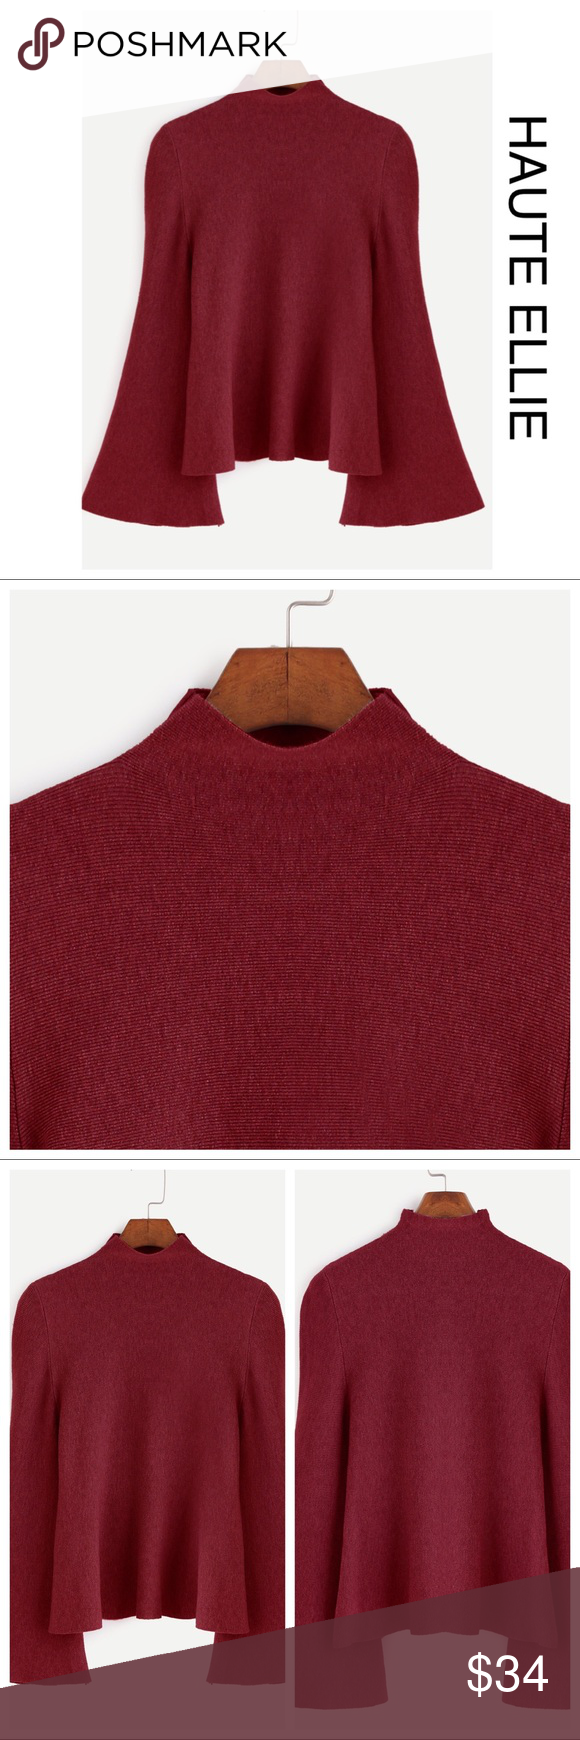 🆕 Big Bell Mock Neck Sweater- Burgundy Boutique | Mock neck